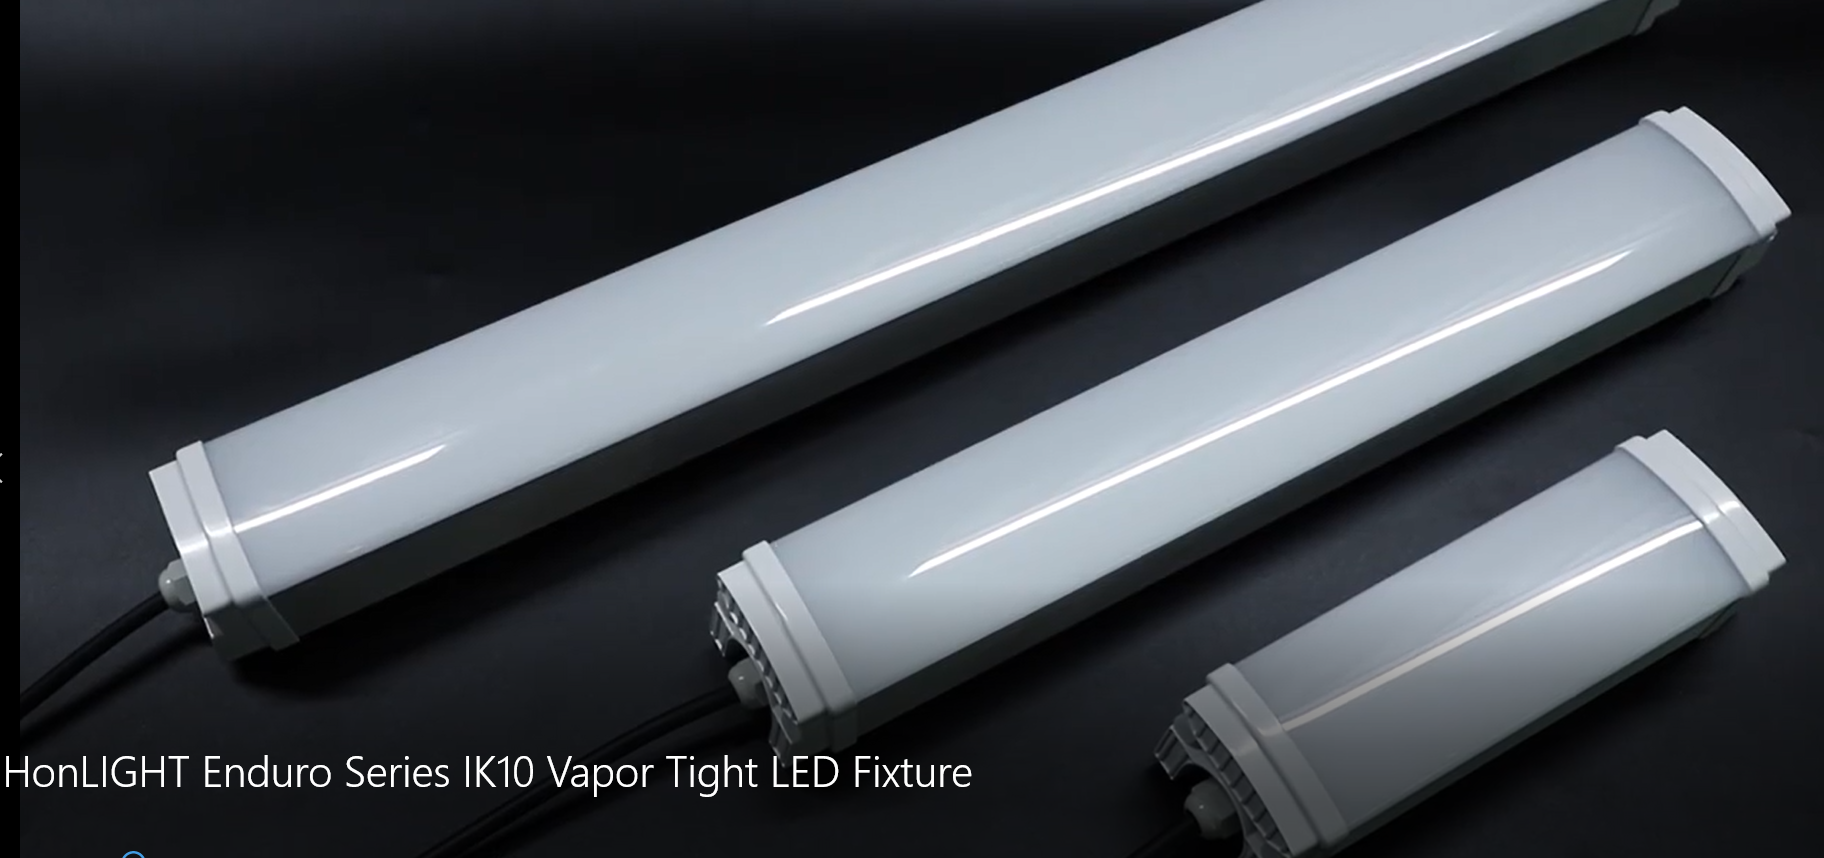 HonLIGHT Enduro Series IK10 Vapor Tight LED Fixture